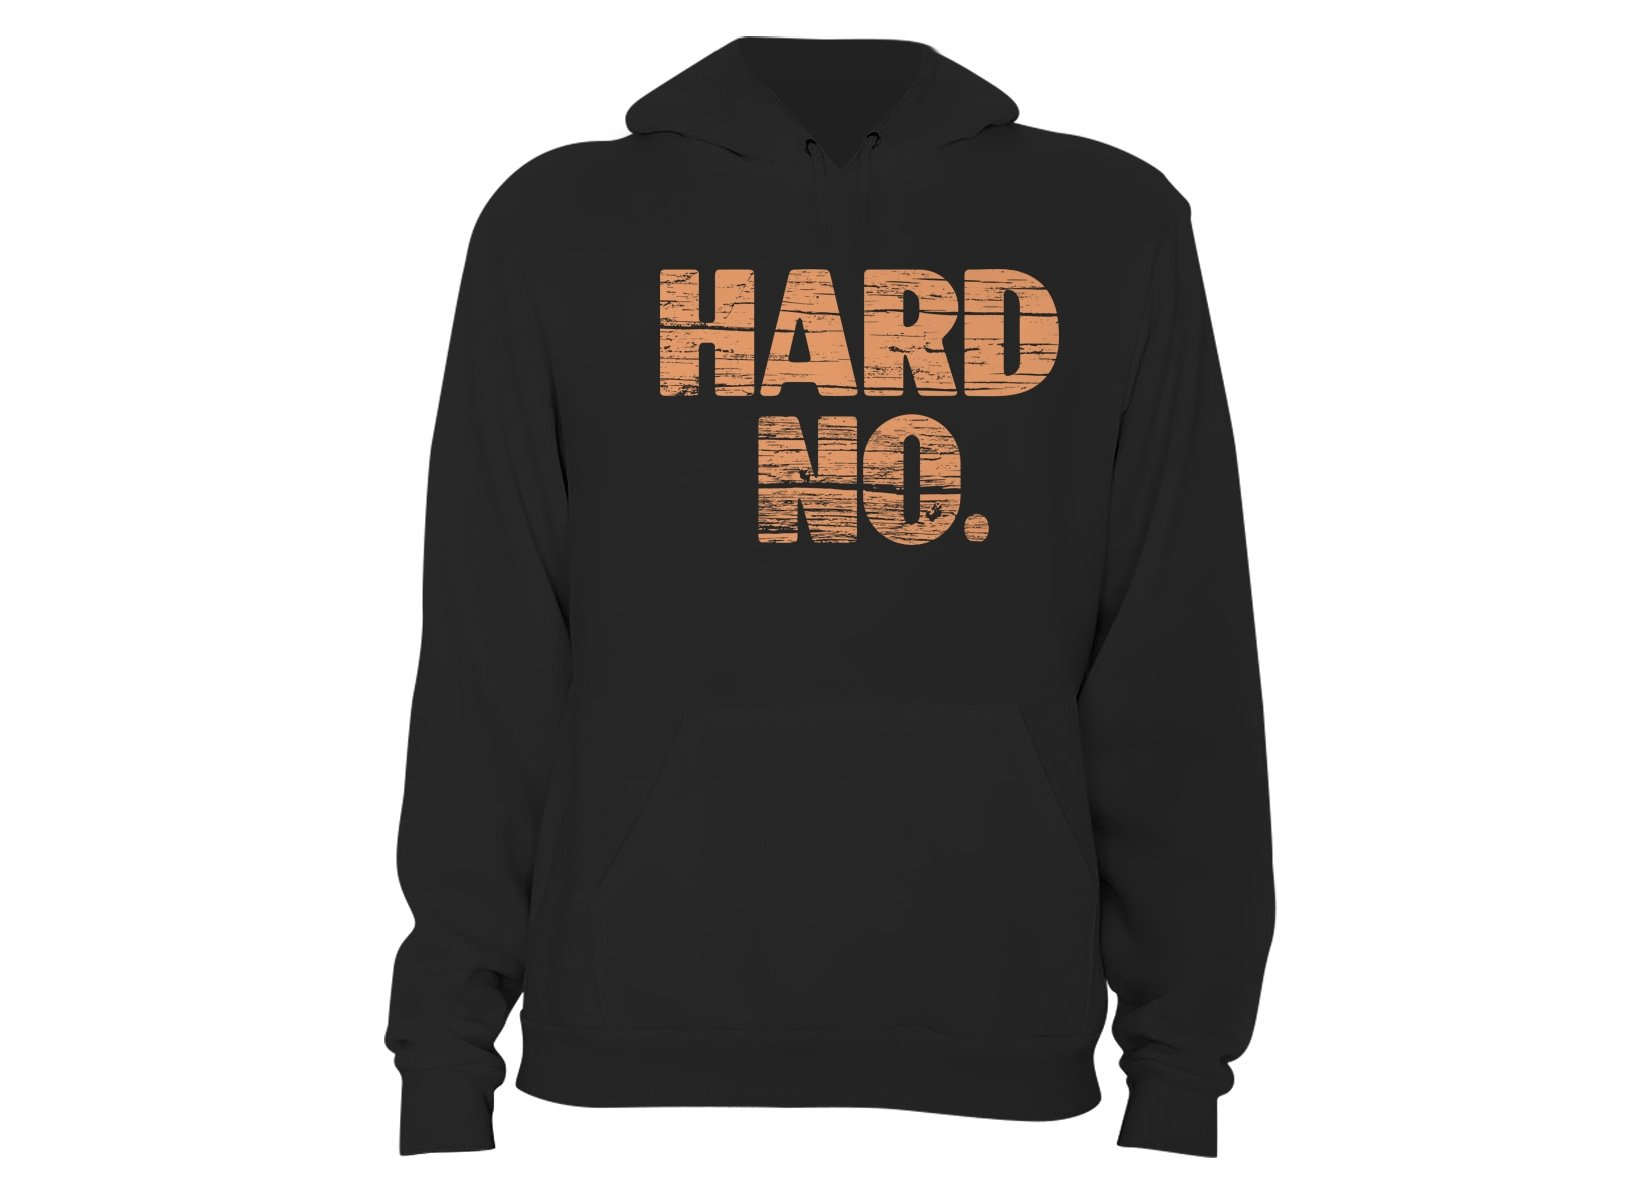 Hard No on Hoodie